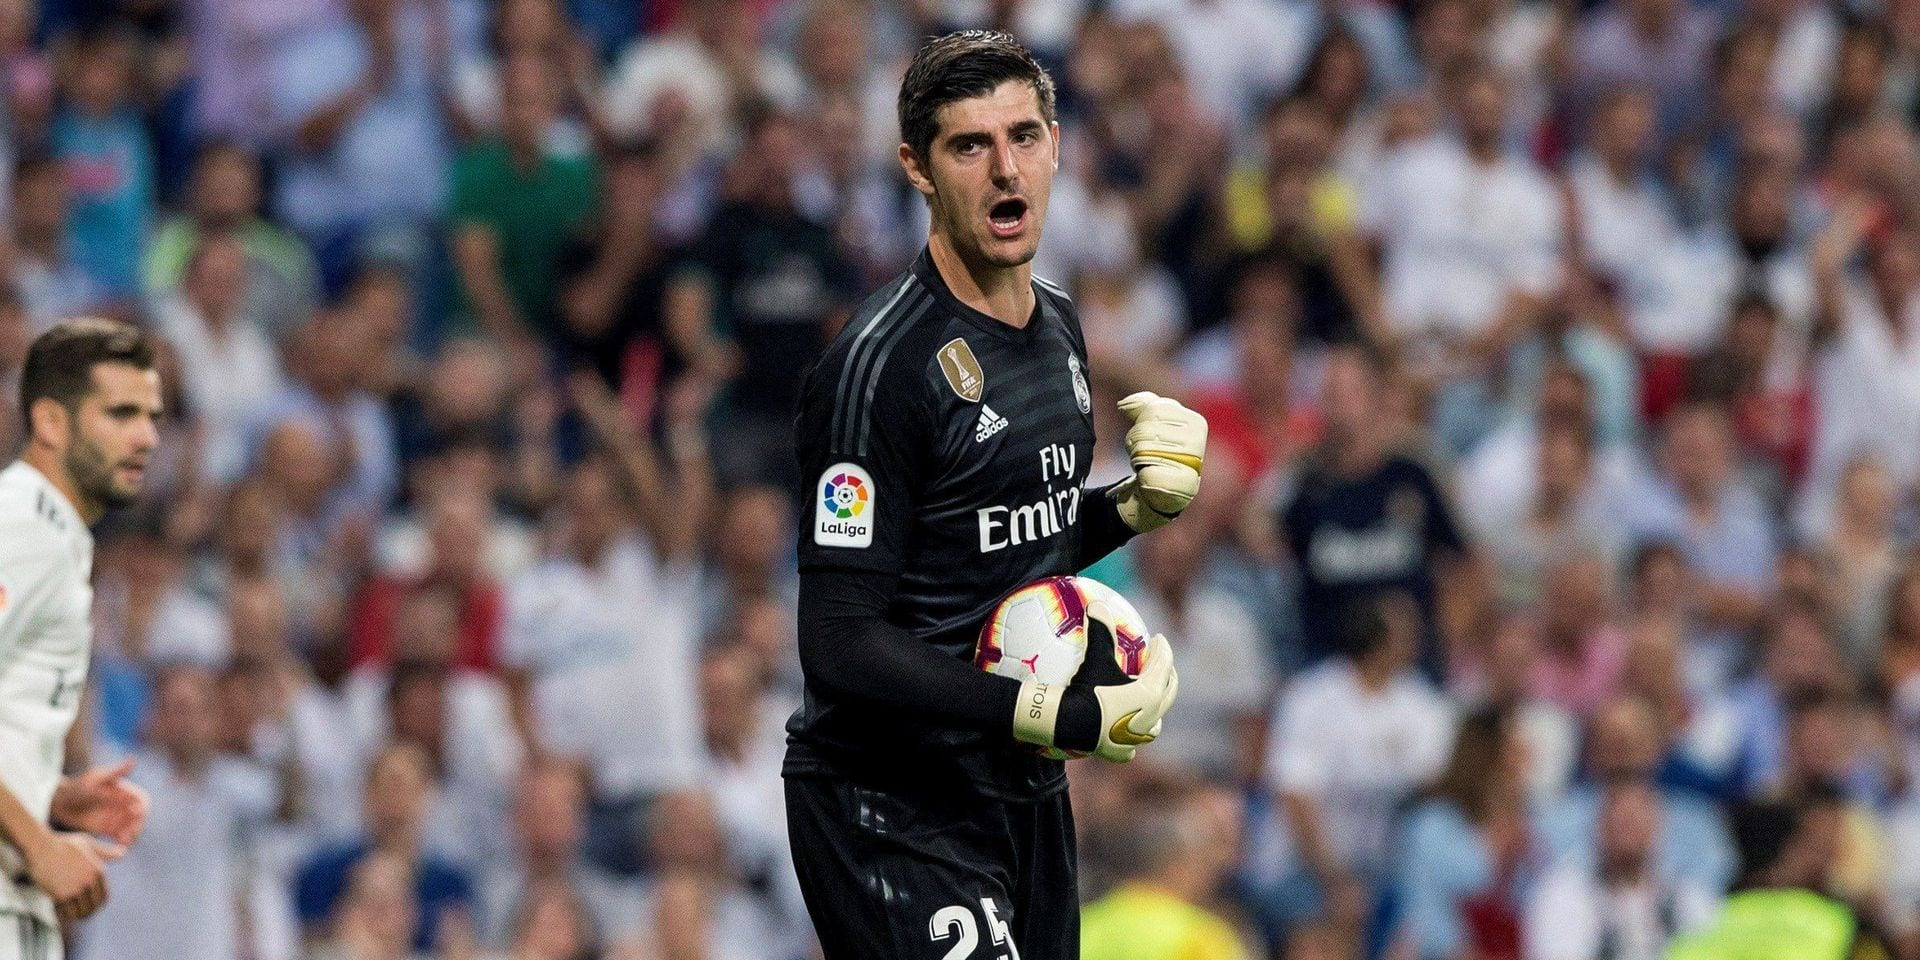 Real Madrid's goalkeeper Thibaut Courtois reacts during a game of La Liga Santander against Atletico de Madrid, at the Santiago Bernabeu Stadium in Madrid, Spain, 29 September 2018. EFE/Rodrigo Jimenez